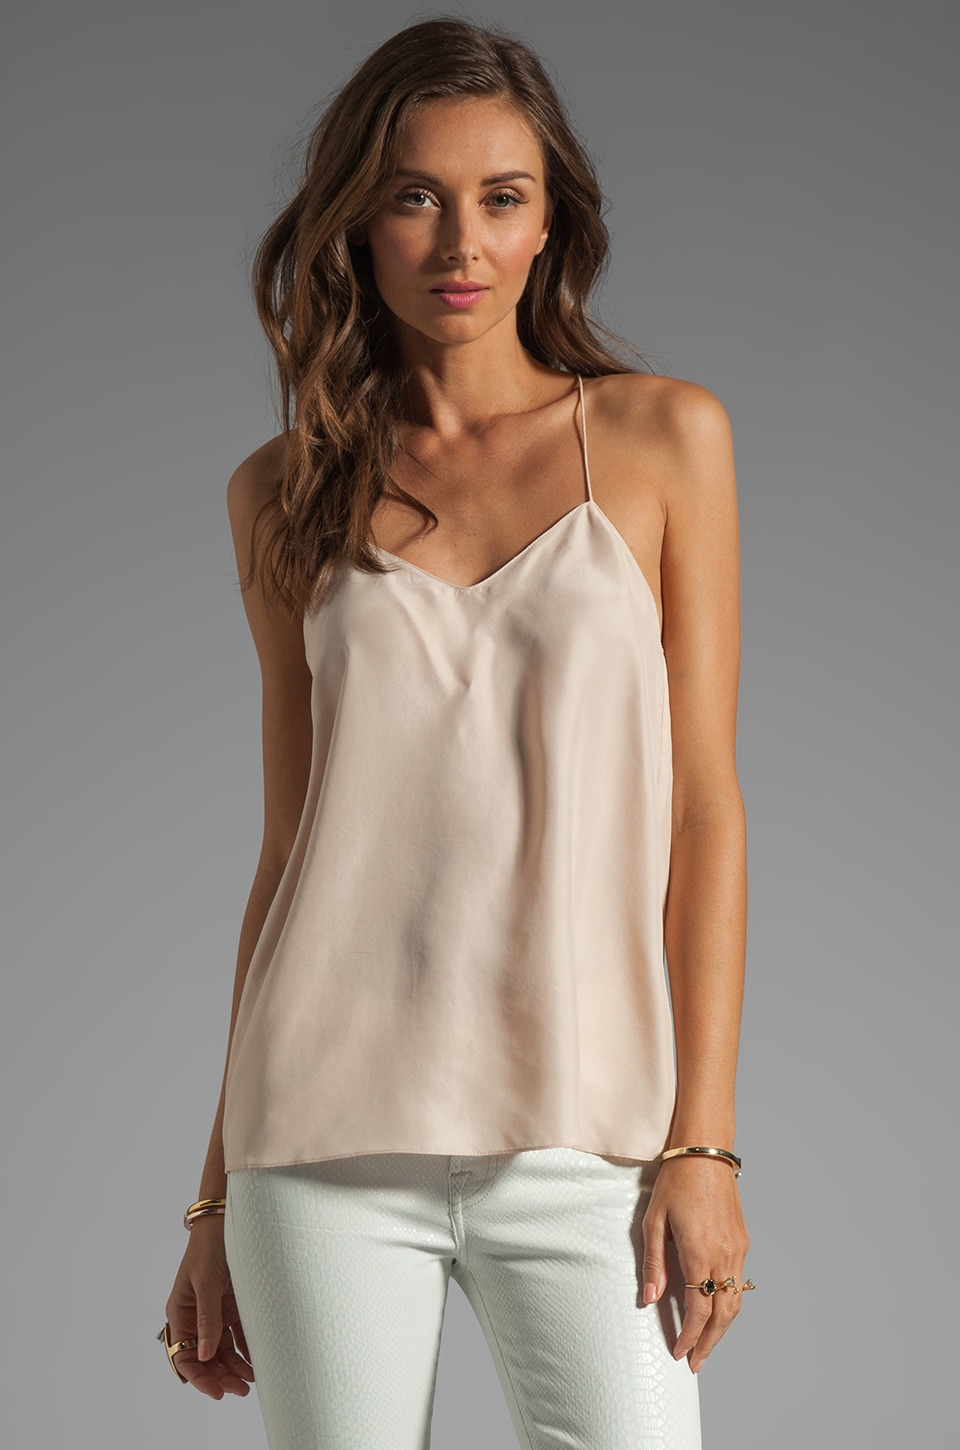 Tibi Silk Cami in Blush